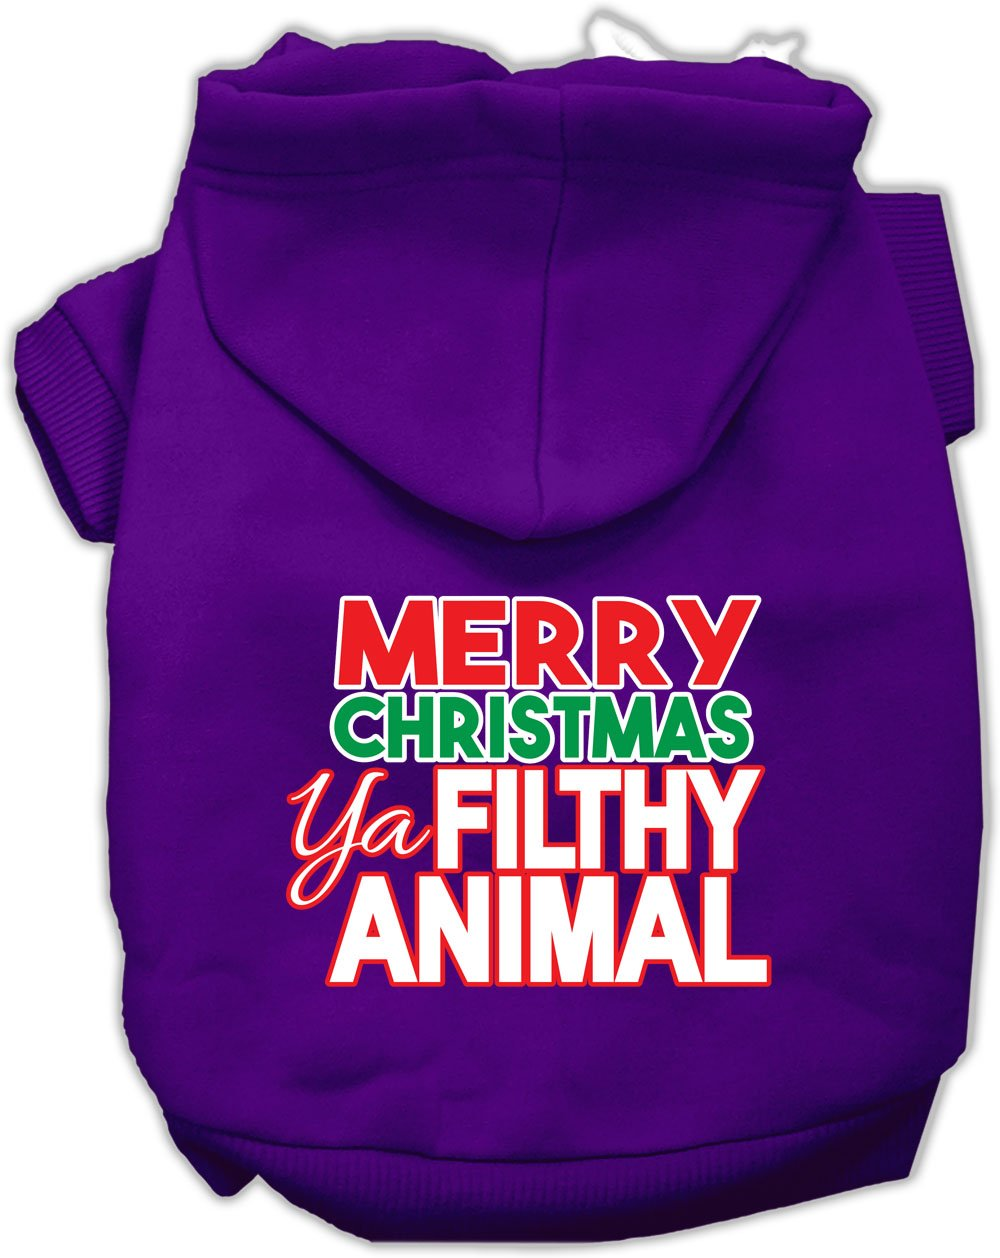 Mirage Pet Products 62-148 SMPR Ya Filthy Animal Screen Print Purple Pet Hoodie, Small